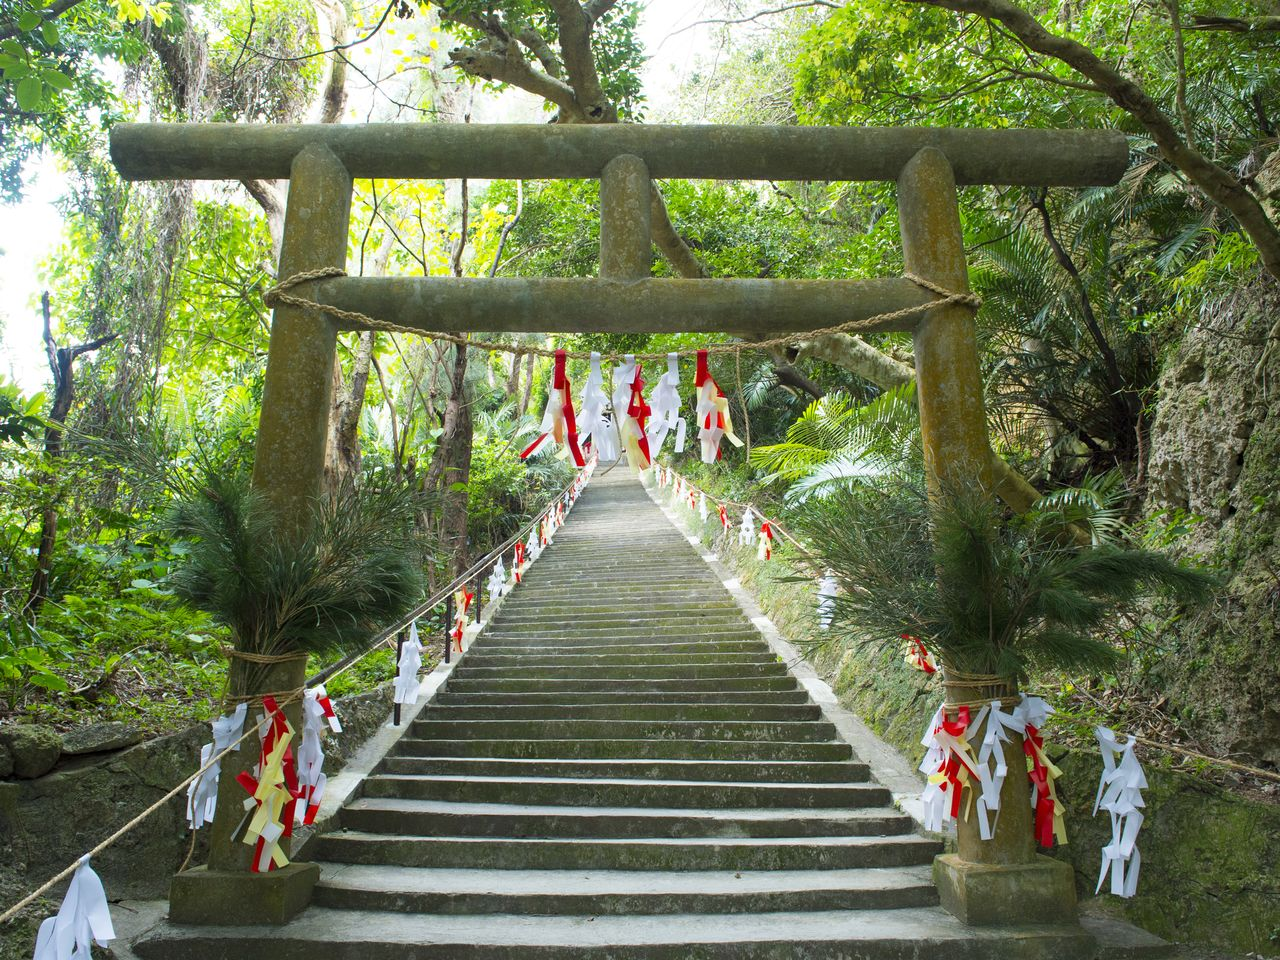 The Shirumichū sacred spot is at the top of these steps, whose entrance is marked by a <em>torii</em> gate.